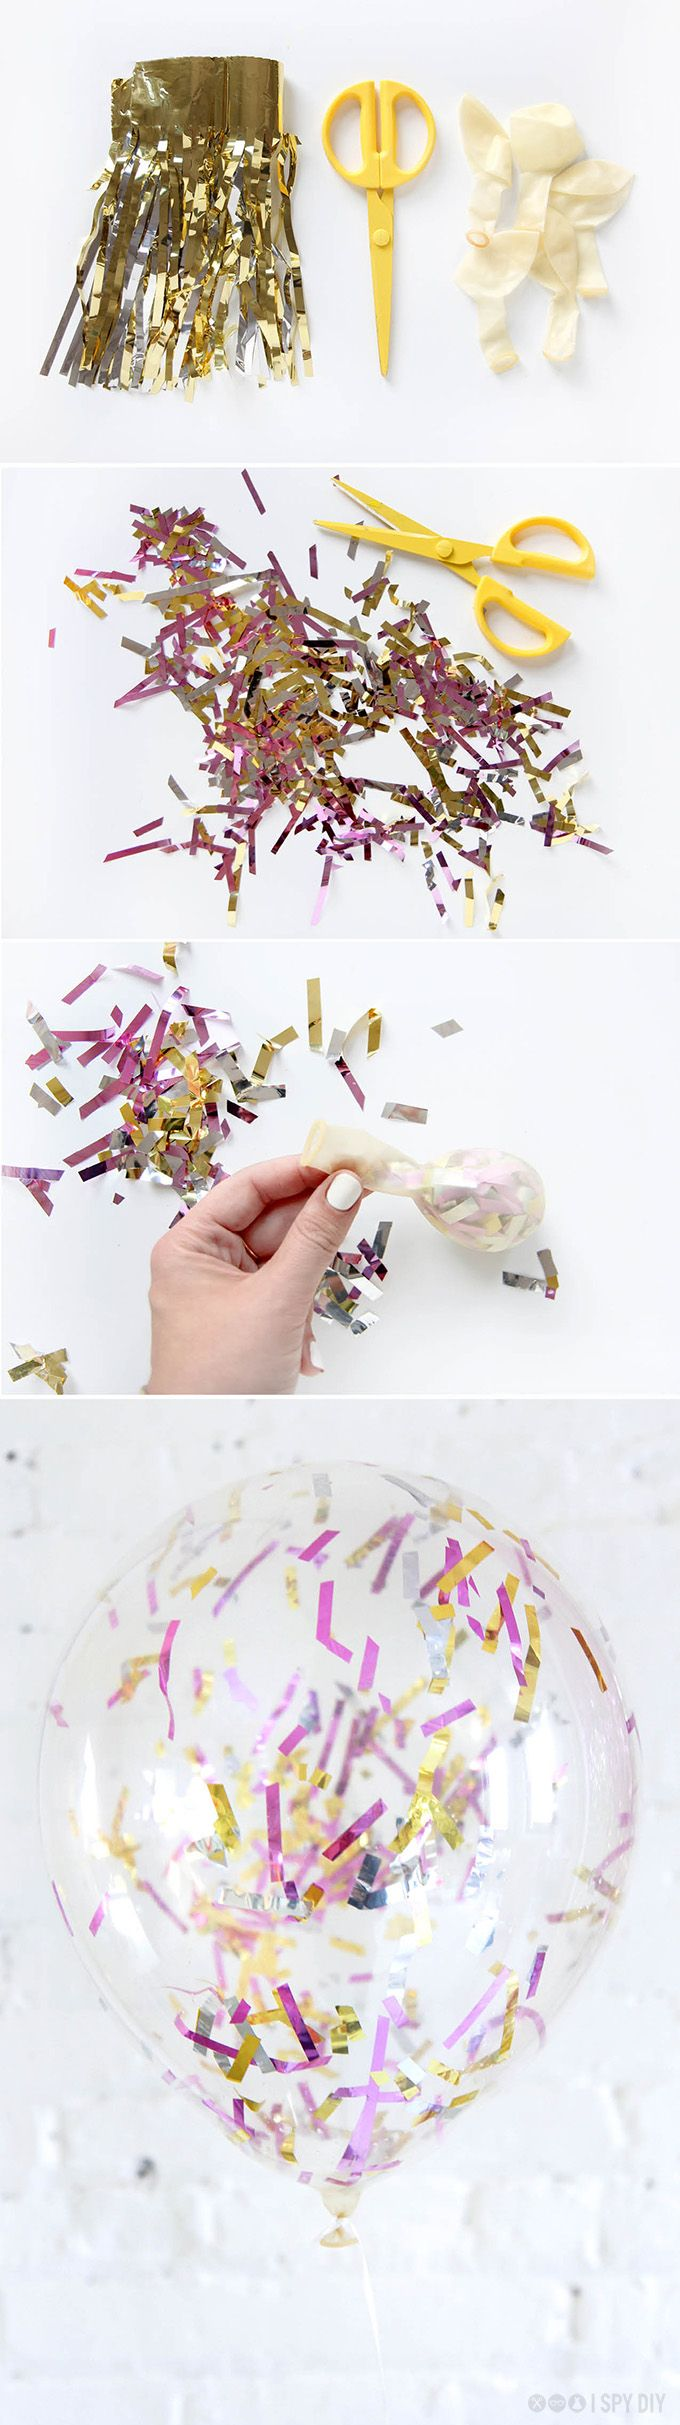 Confetti Balloon Tutorial